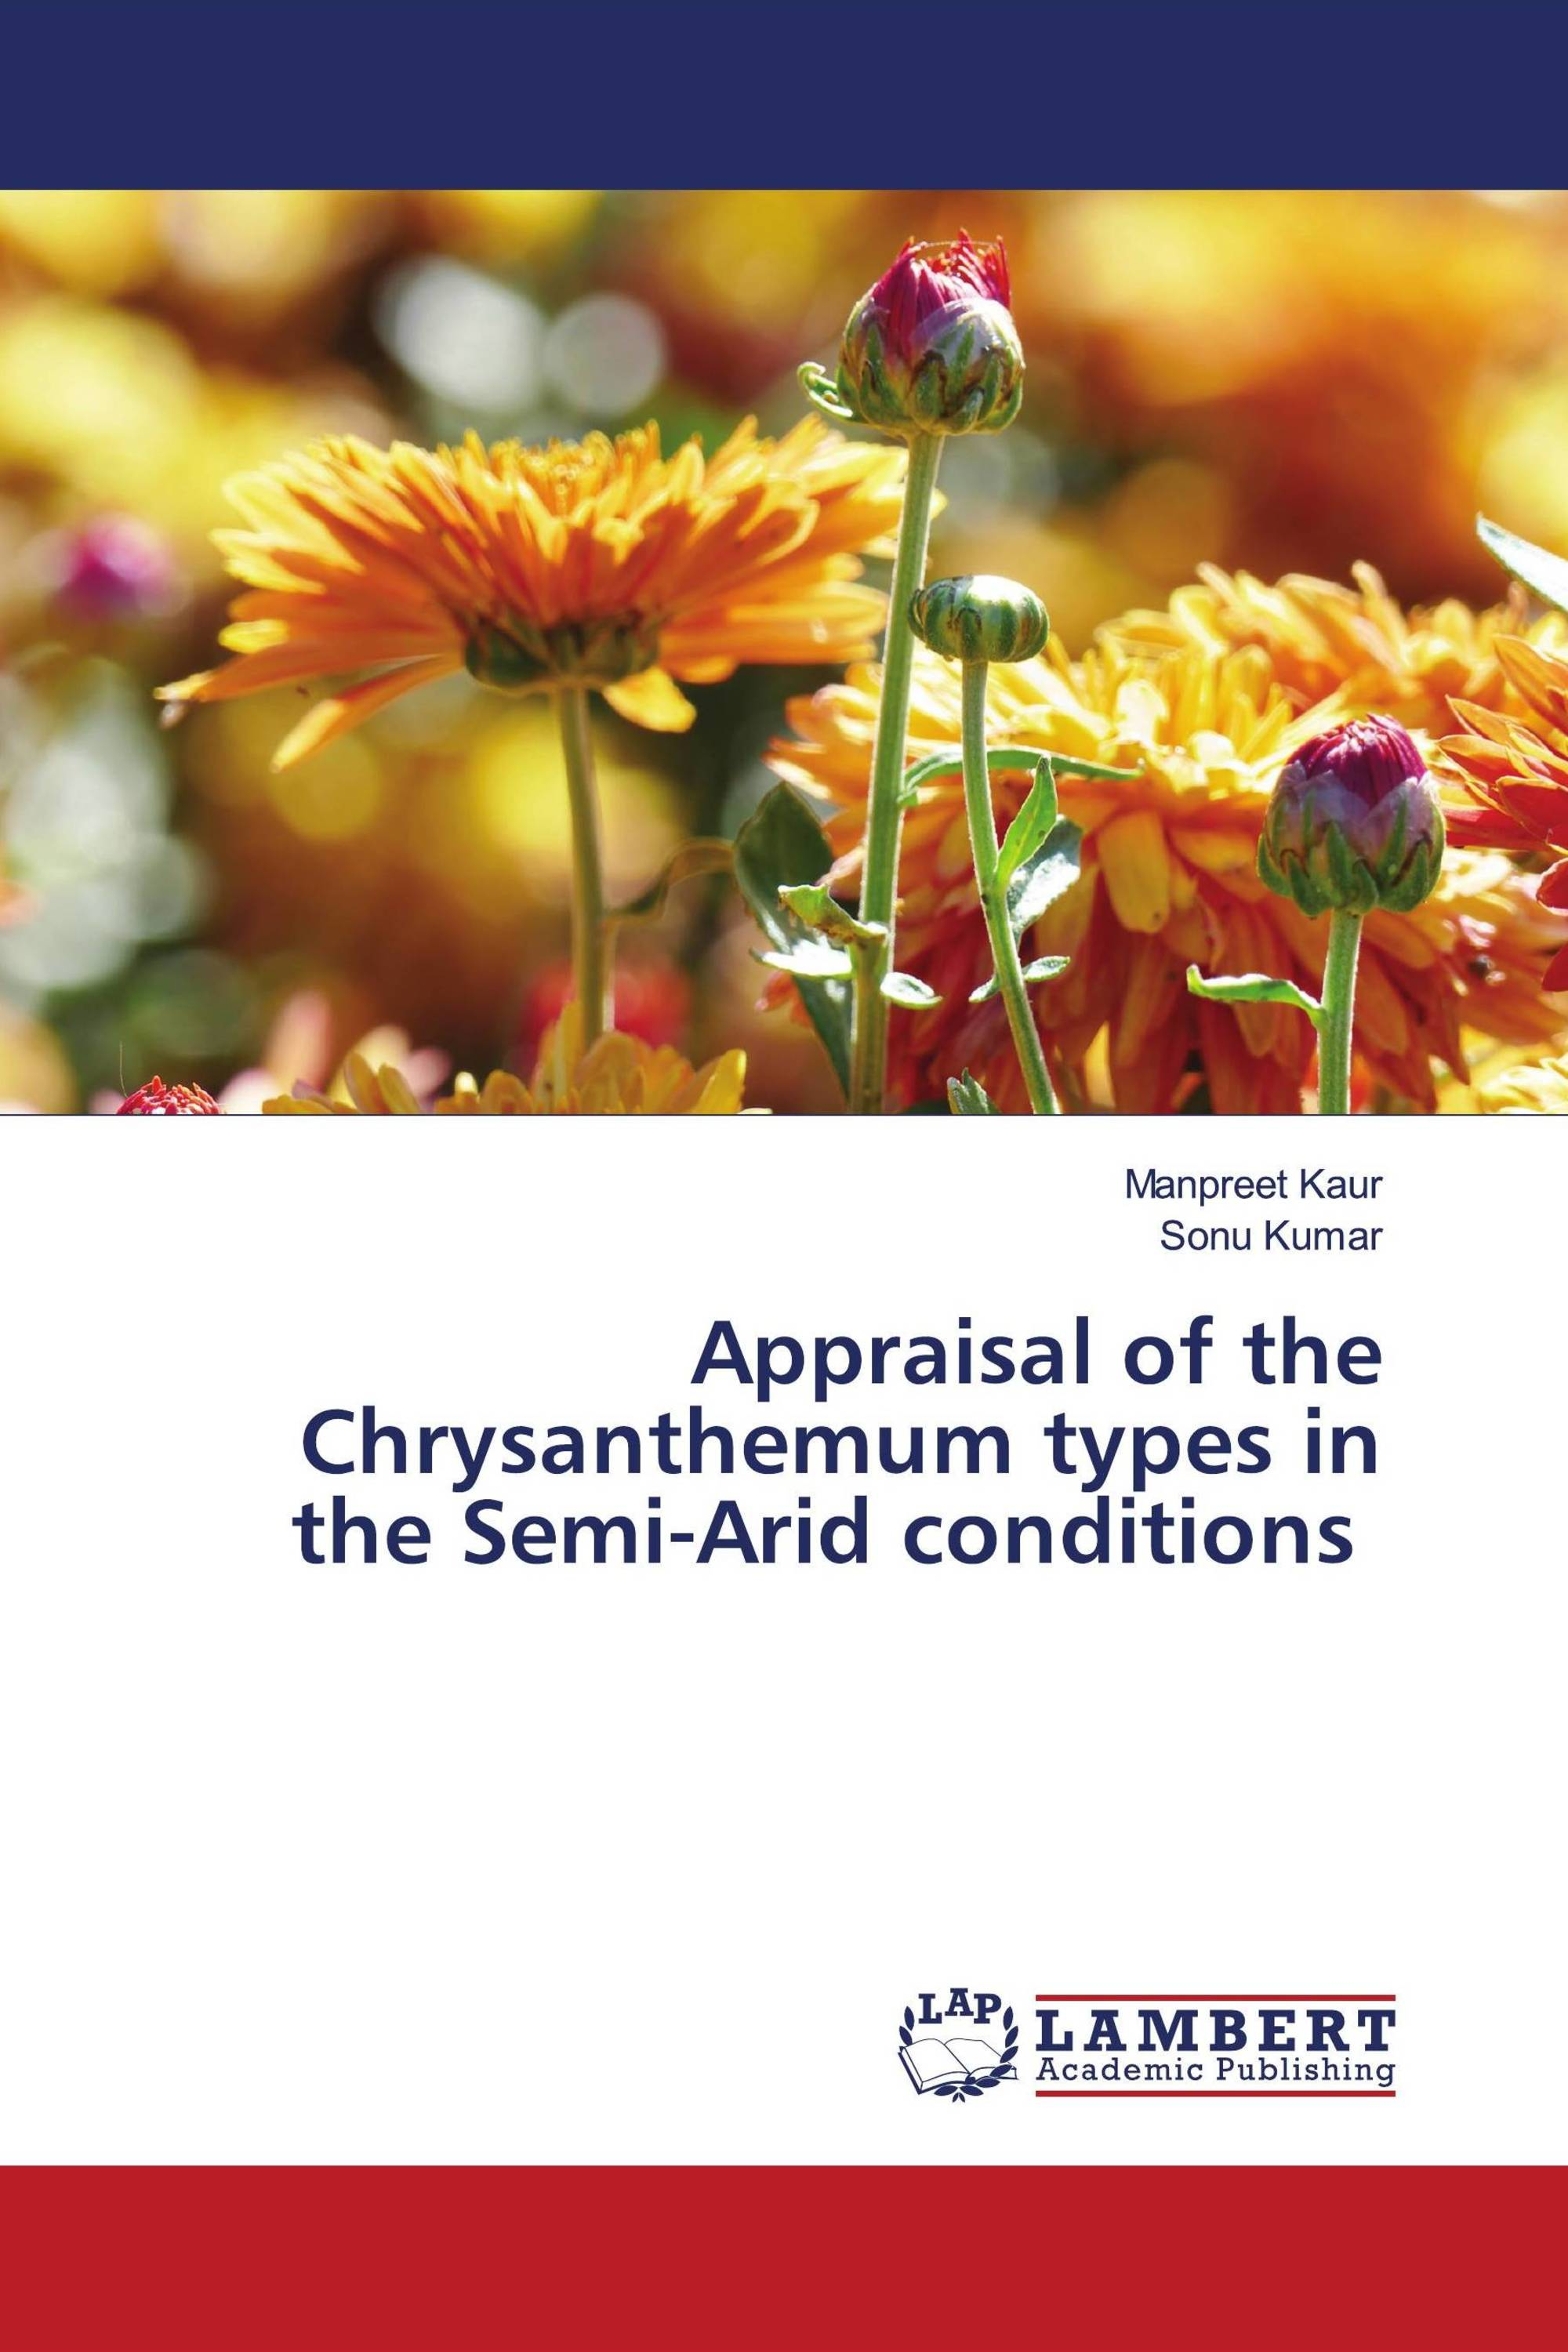 Appraisal of the Chrysanthemum types in the Semi-Arid conditions